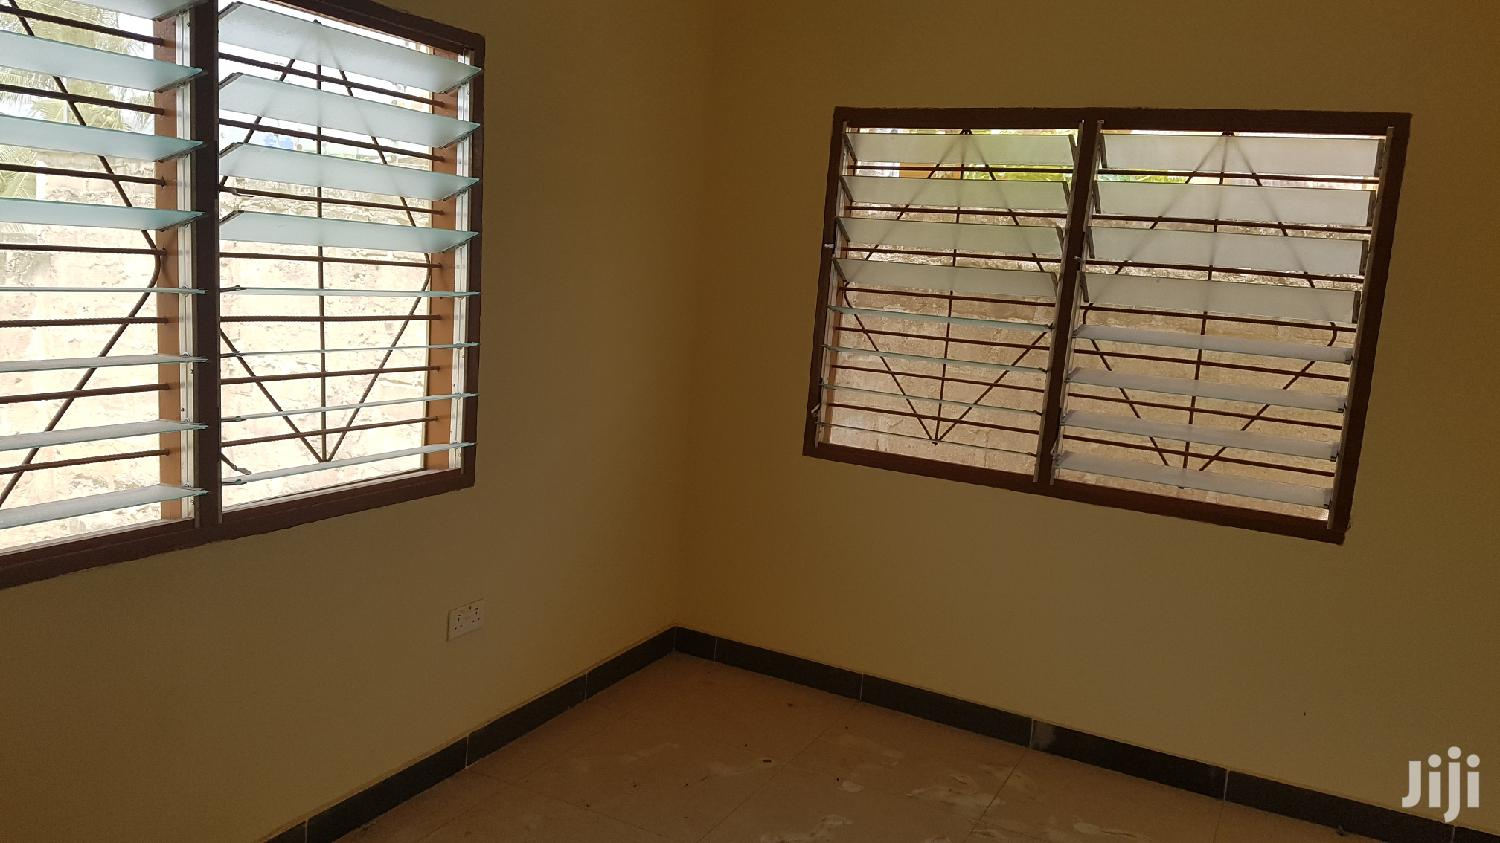 One Bedroom Flat | Houses & Apartments For Rent for sale in Accra Metropolitan, Greater Accra, Ghana